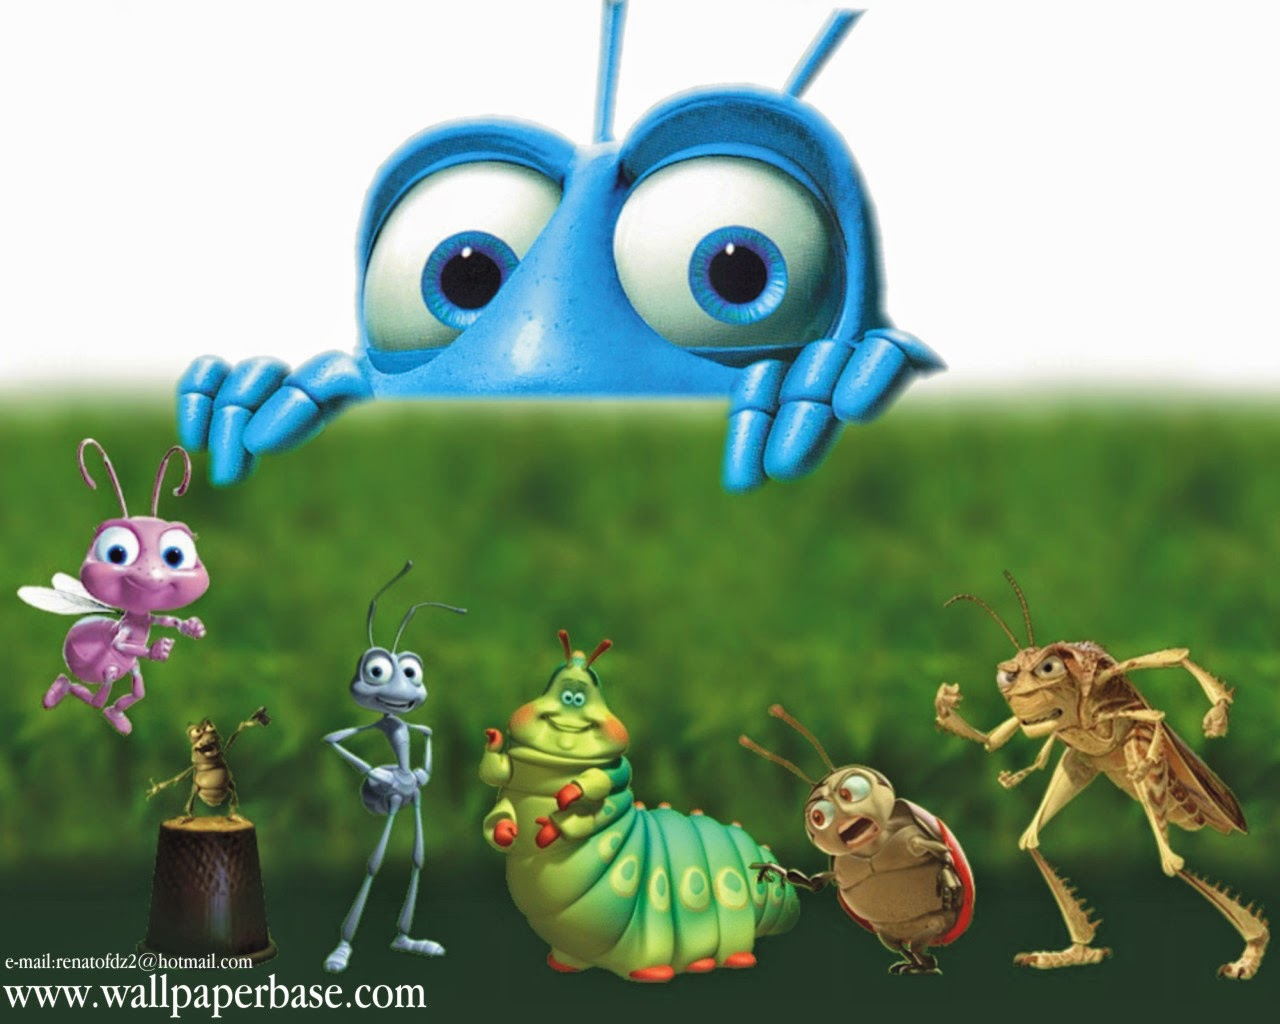 Free Desktop Wallpaper A Bug S Life Wallpaper